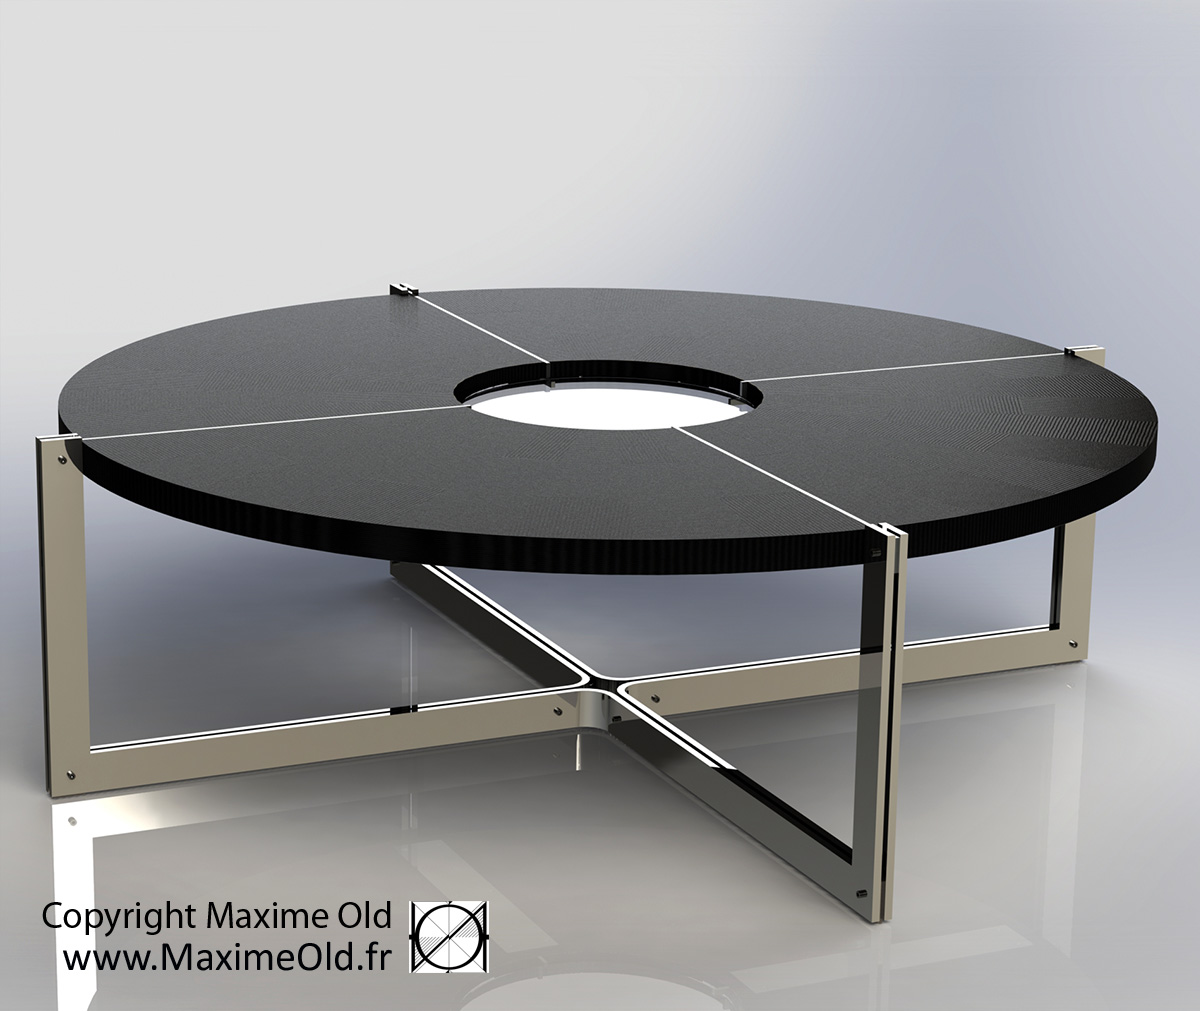 Tables Basses-d Appoint Maxime Old: Table Rose des Vents